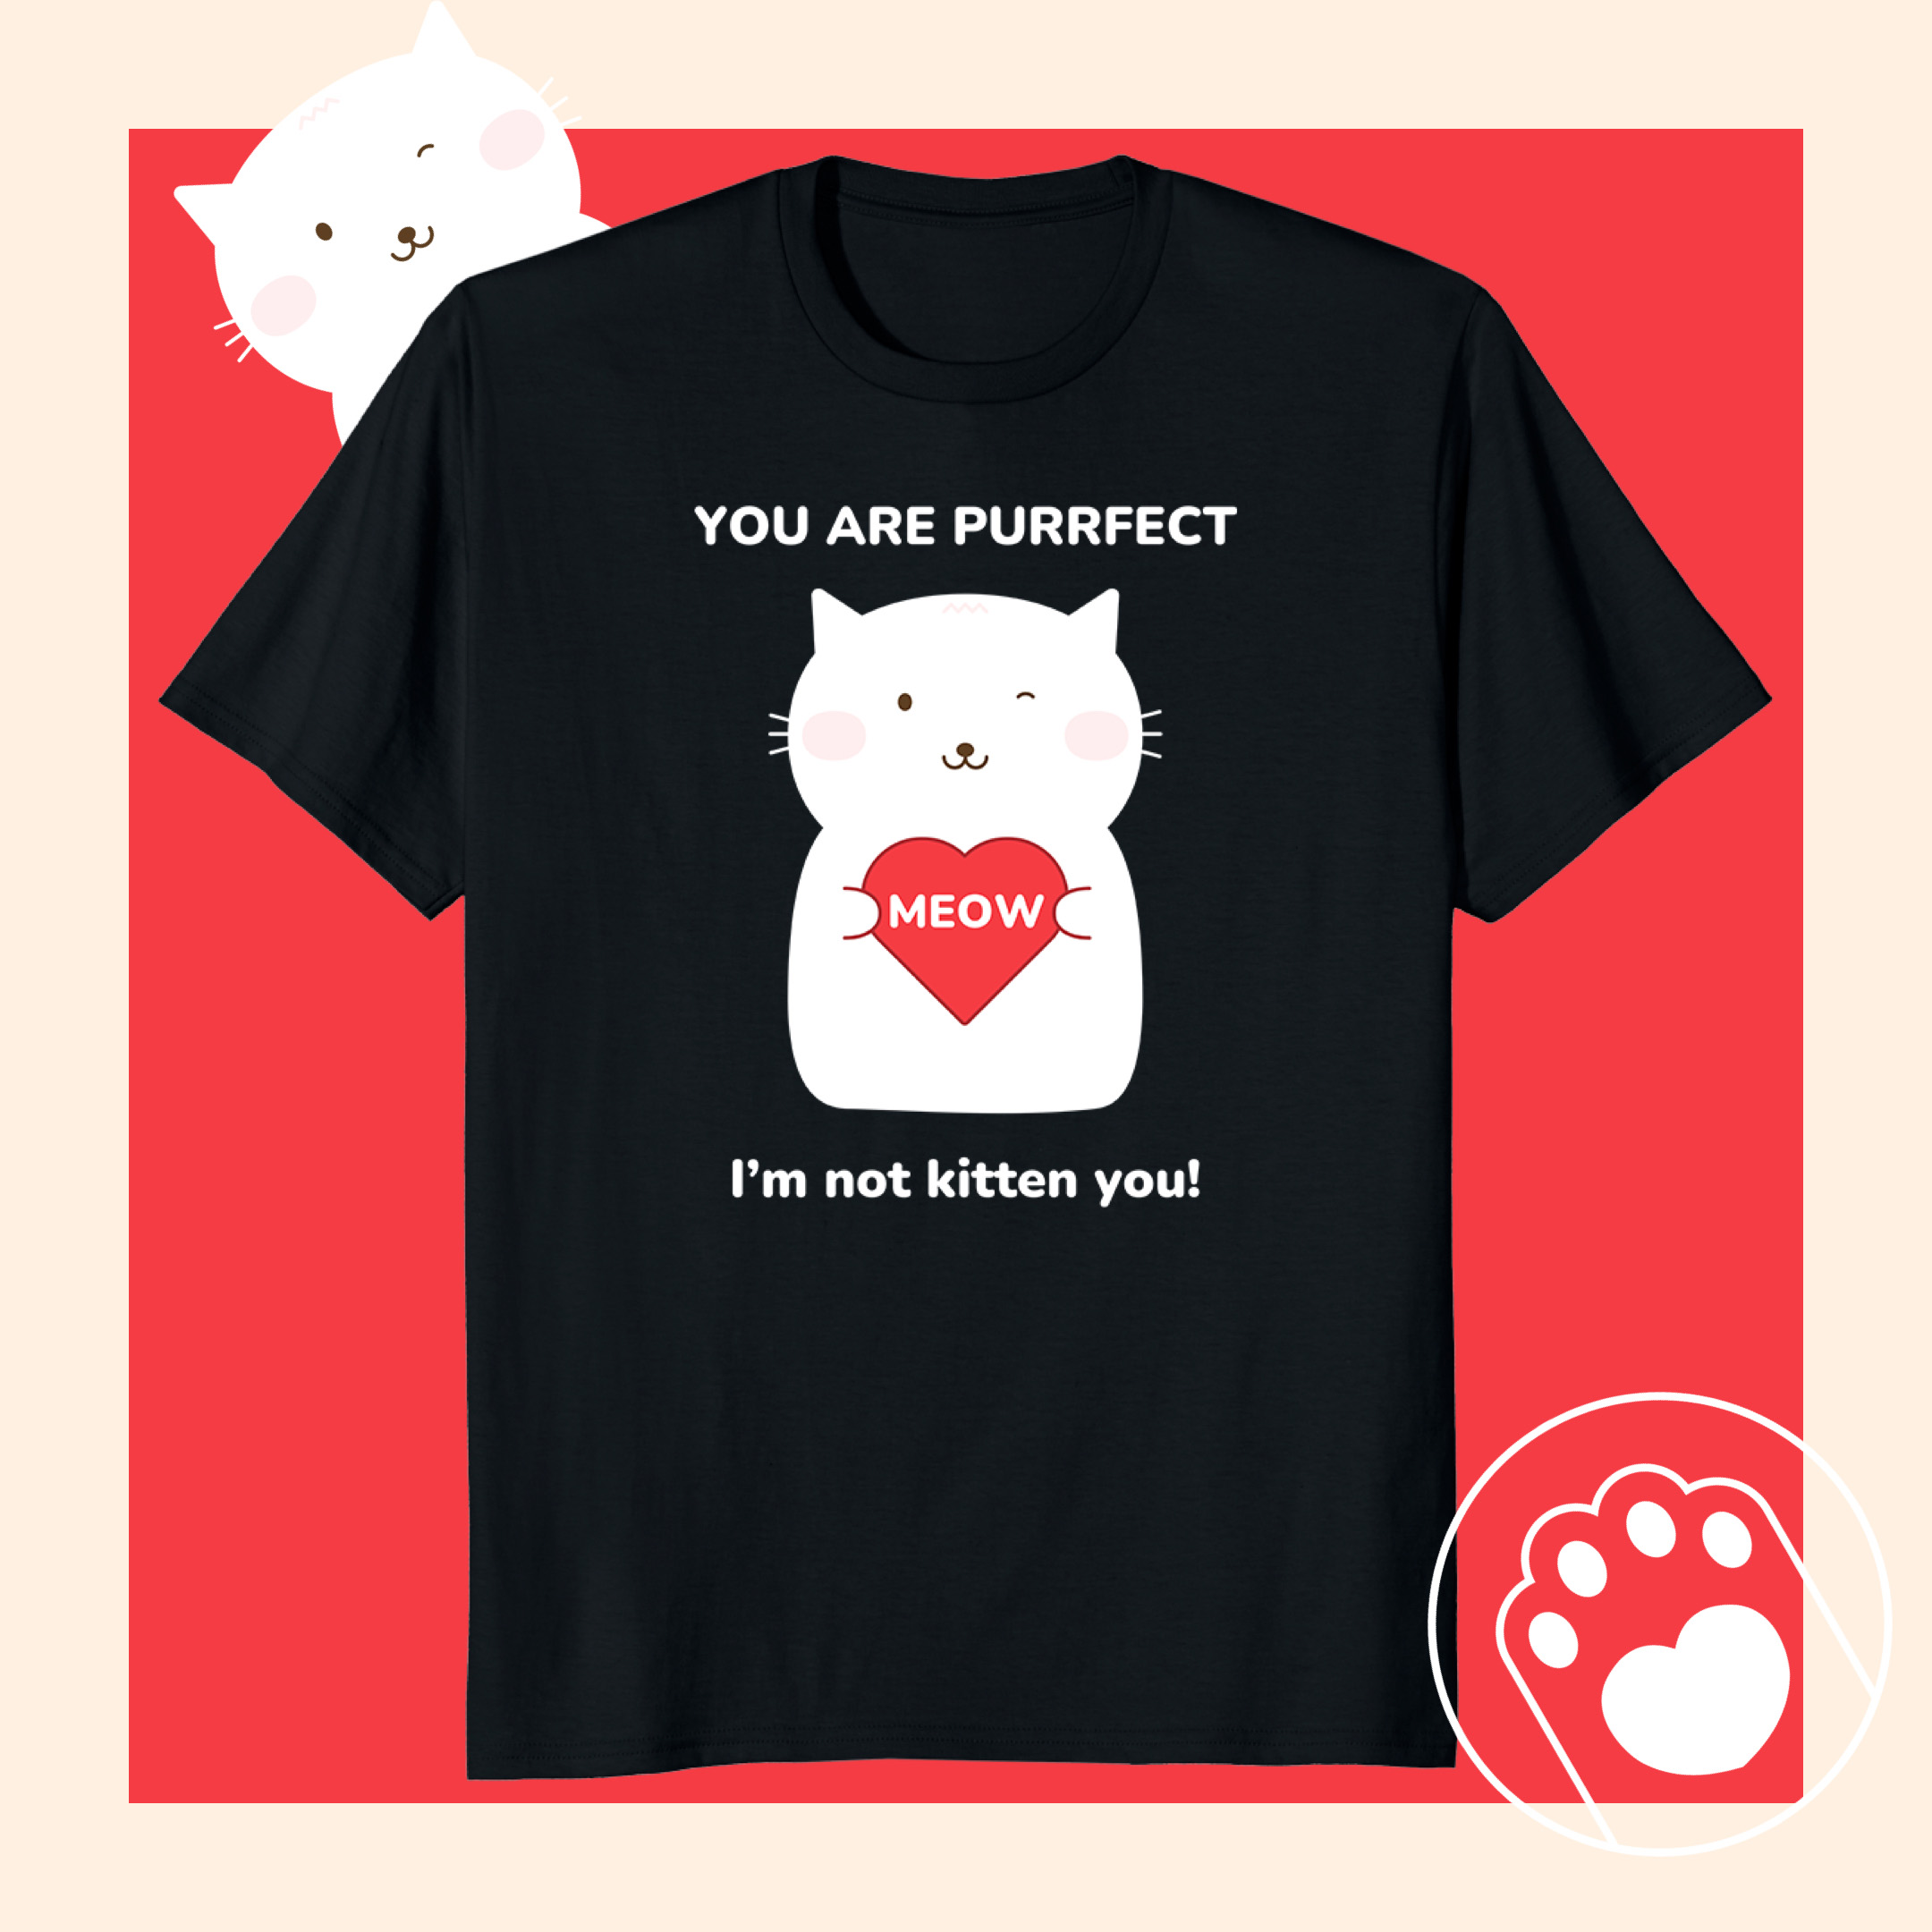 You Are Purrfect. I'm not kitten you!